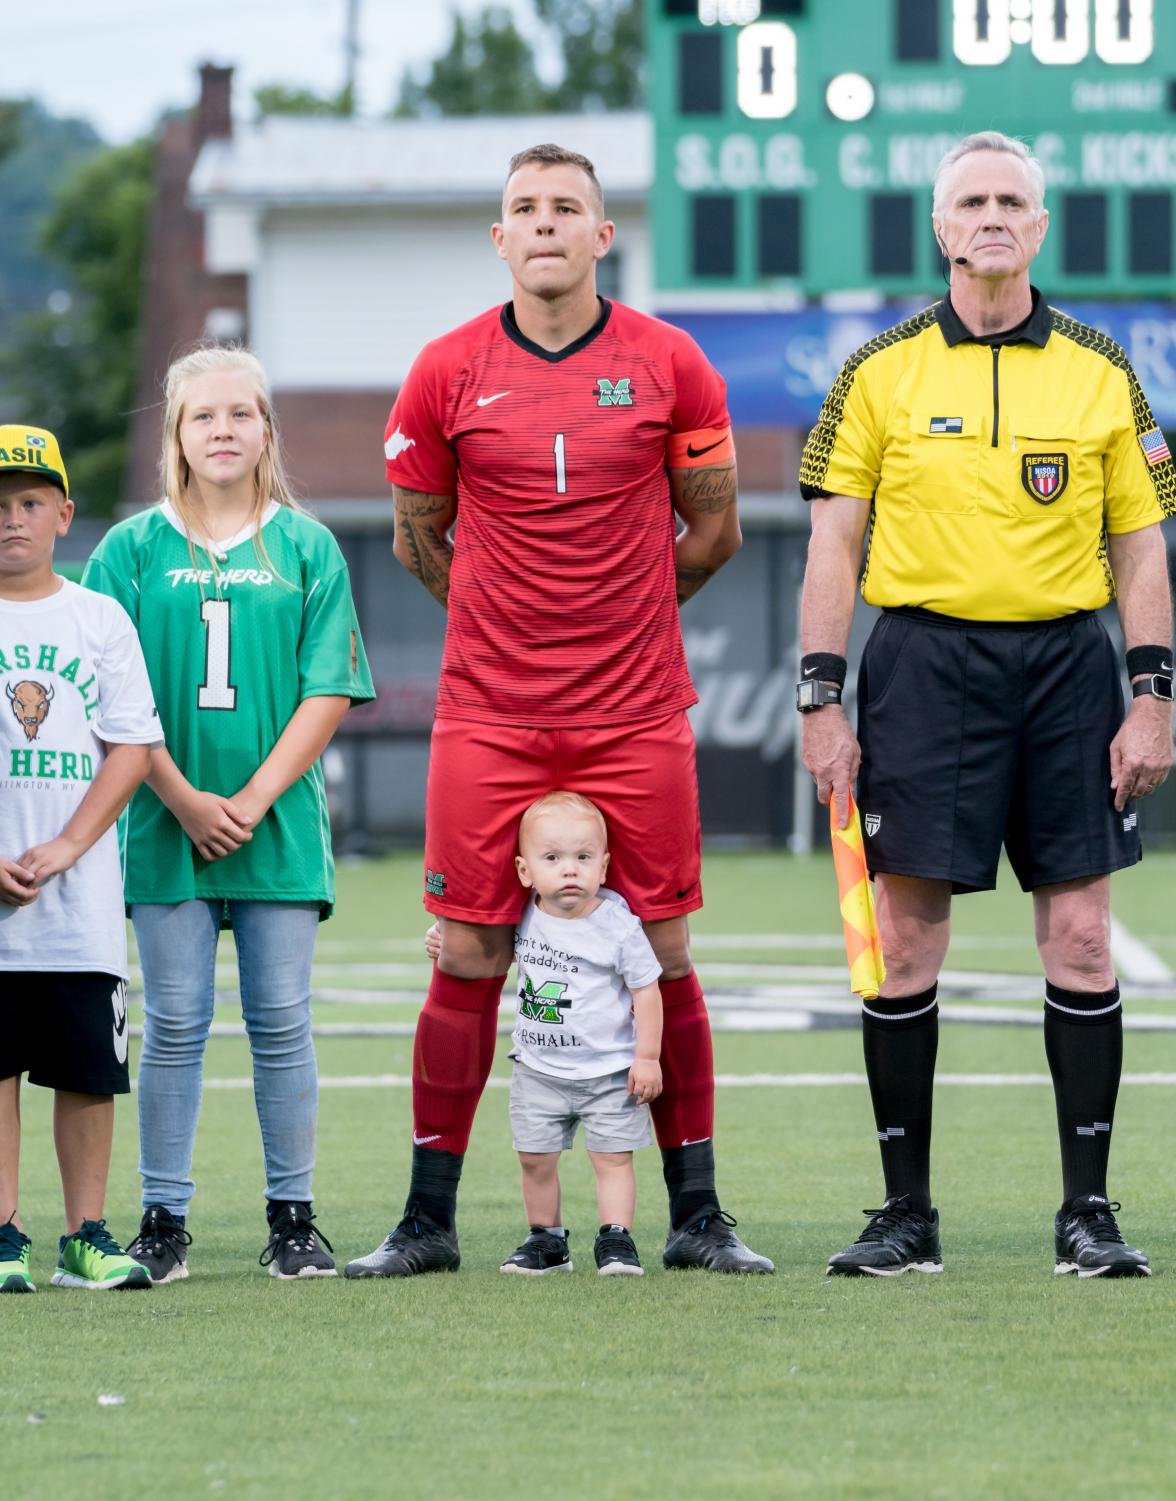 Paulo Pita and son Brody stand in line before the start of the game.